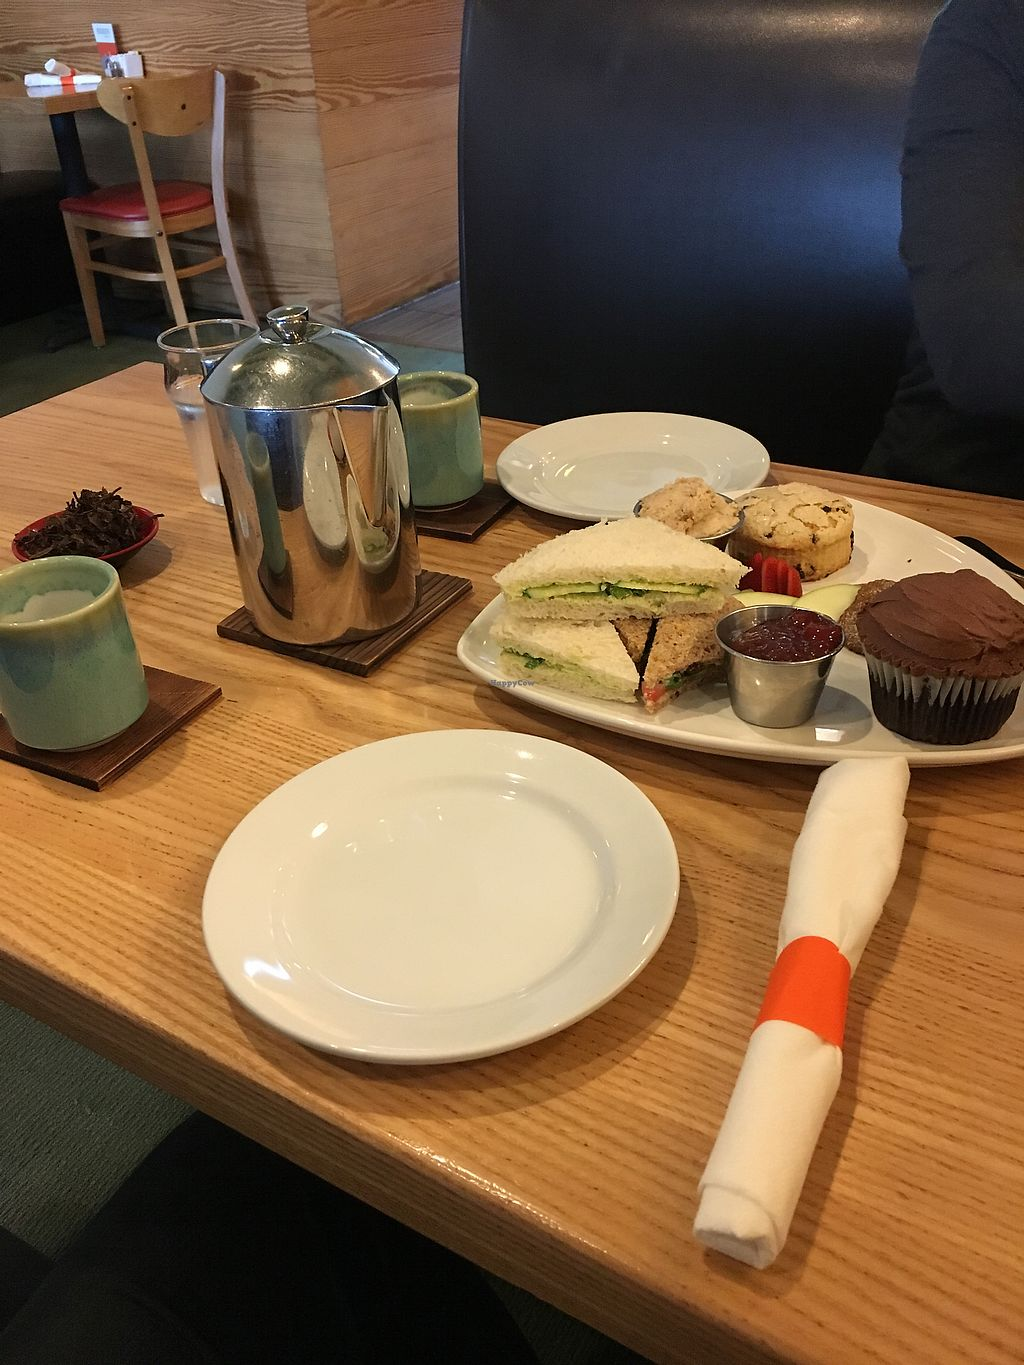 """Photo of The Steeping Room  by <a href=""""/members/profile/giant%20bunnie"""">giant bunnie</a> <br/>Vegan tea service!  <br/> March 25, 2018  - <a href='/contact/abuse/image/62921/375896'>Report</a>"""